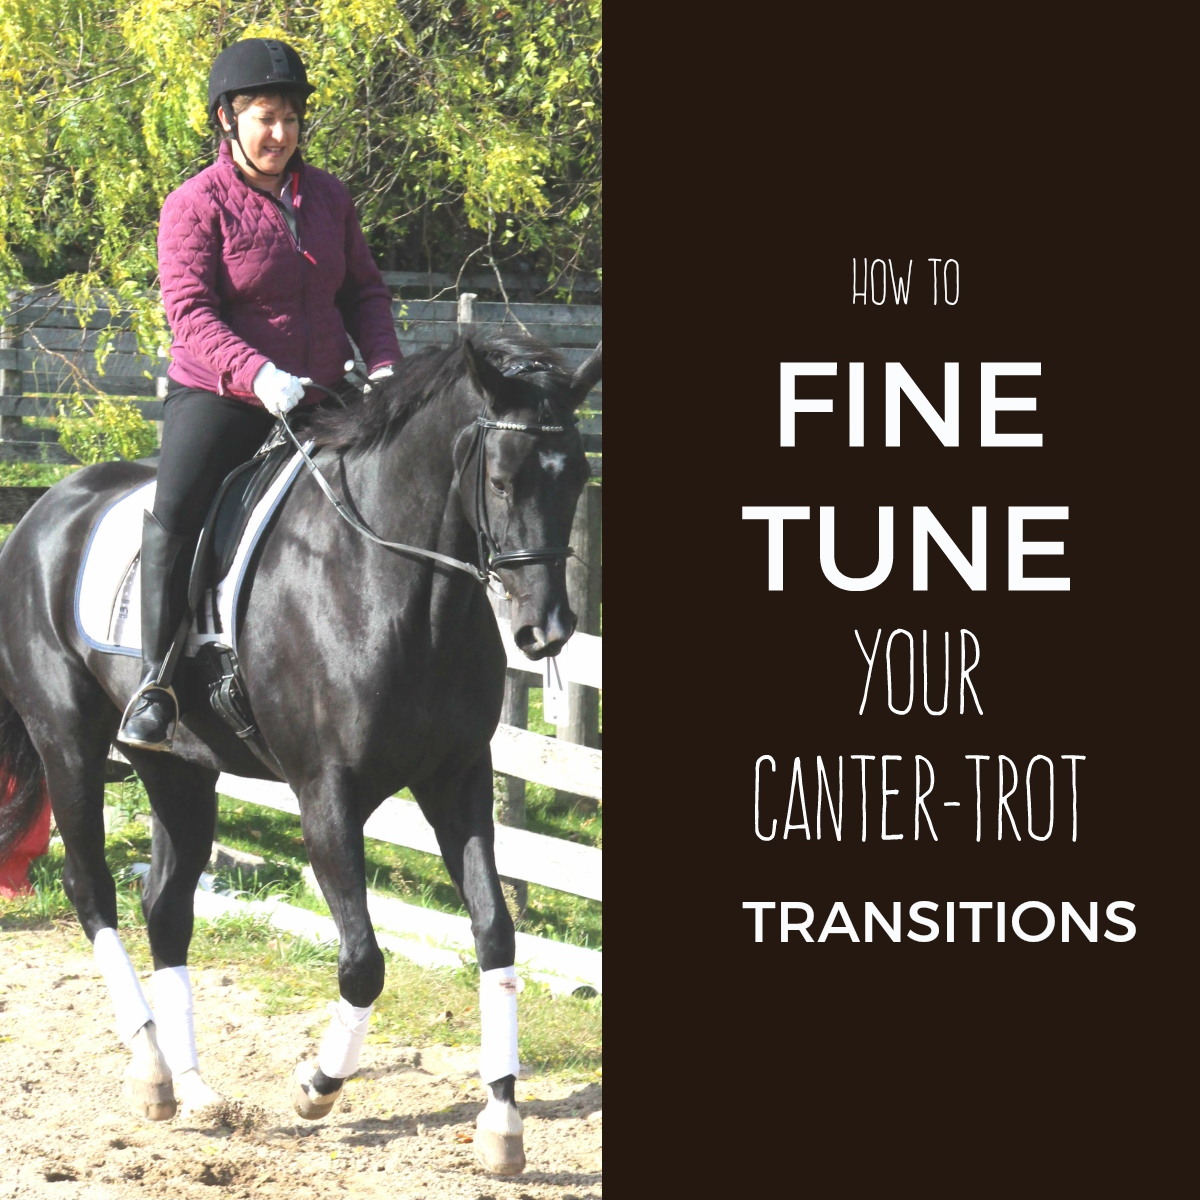 How to Fine Tune Your Canter-Trot Transitions